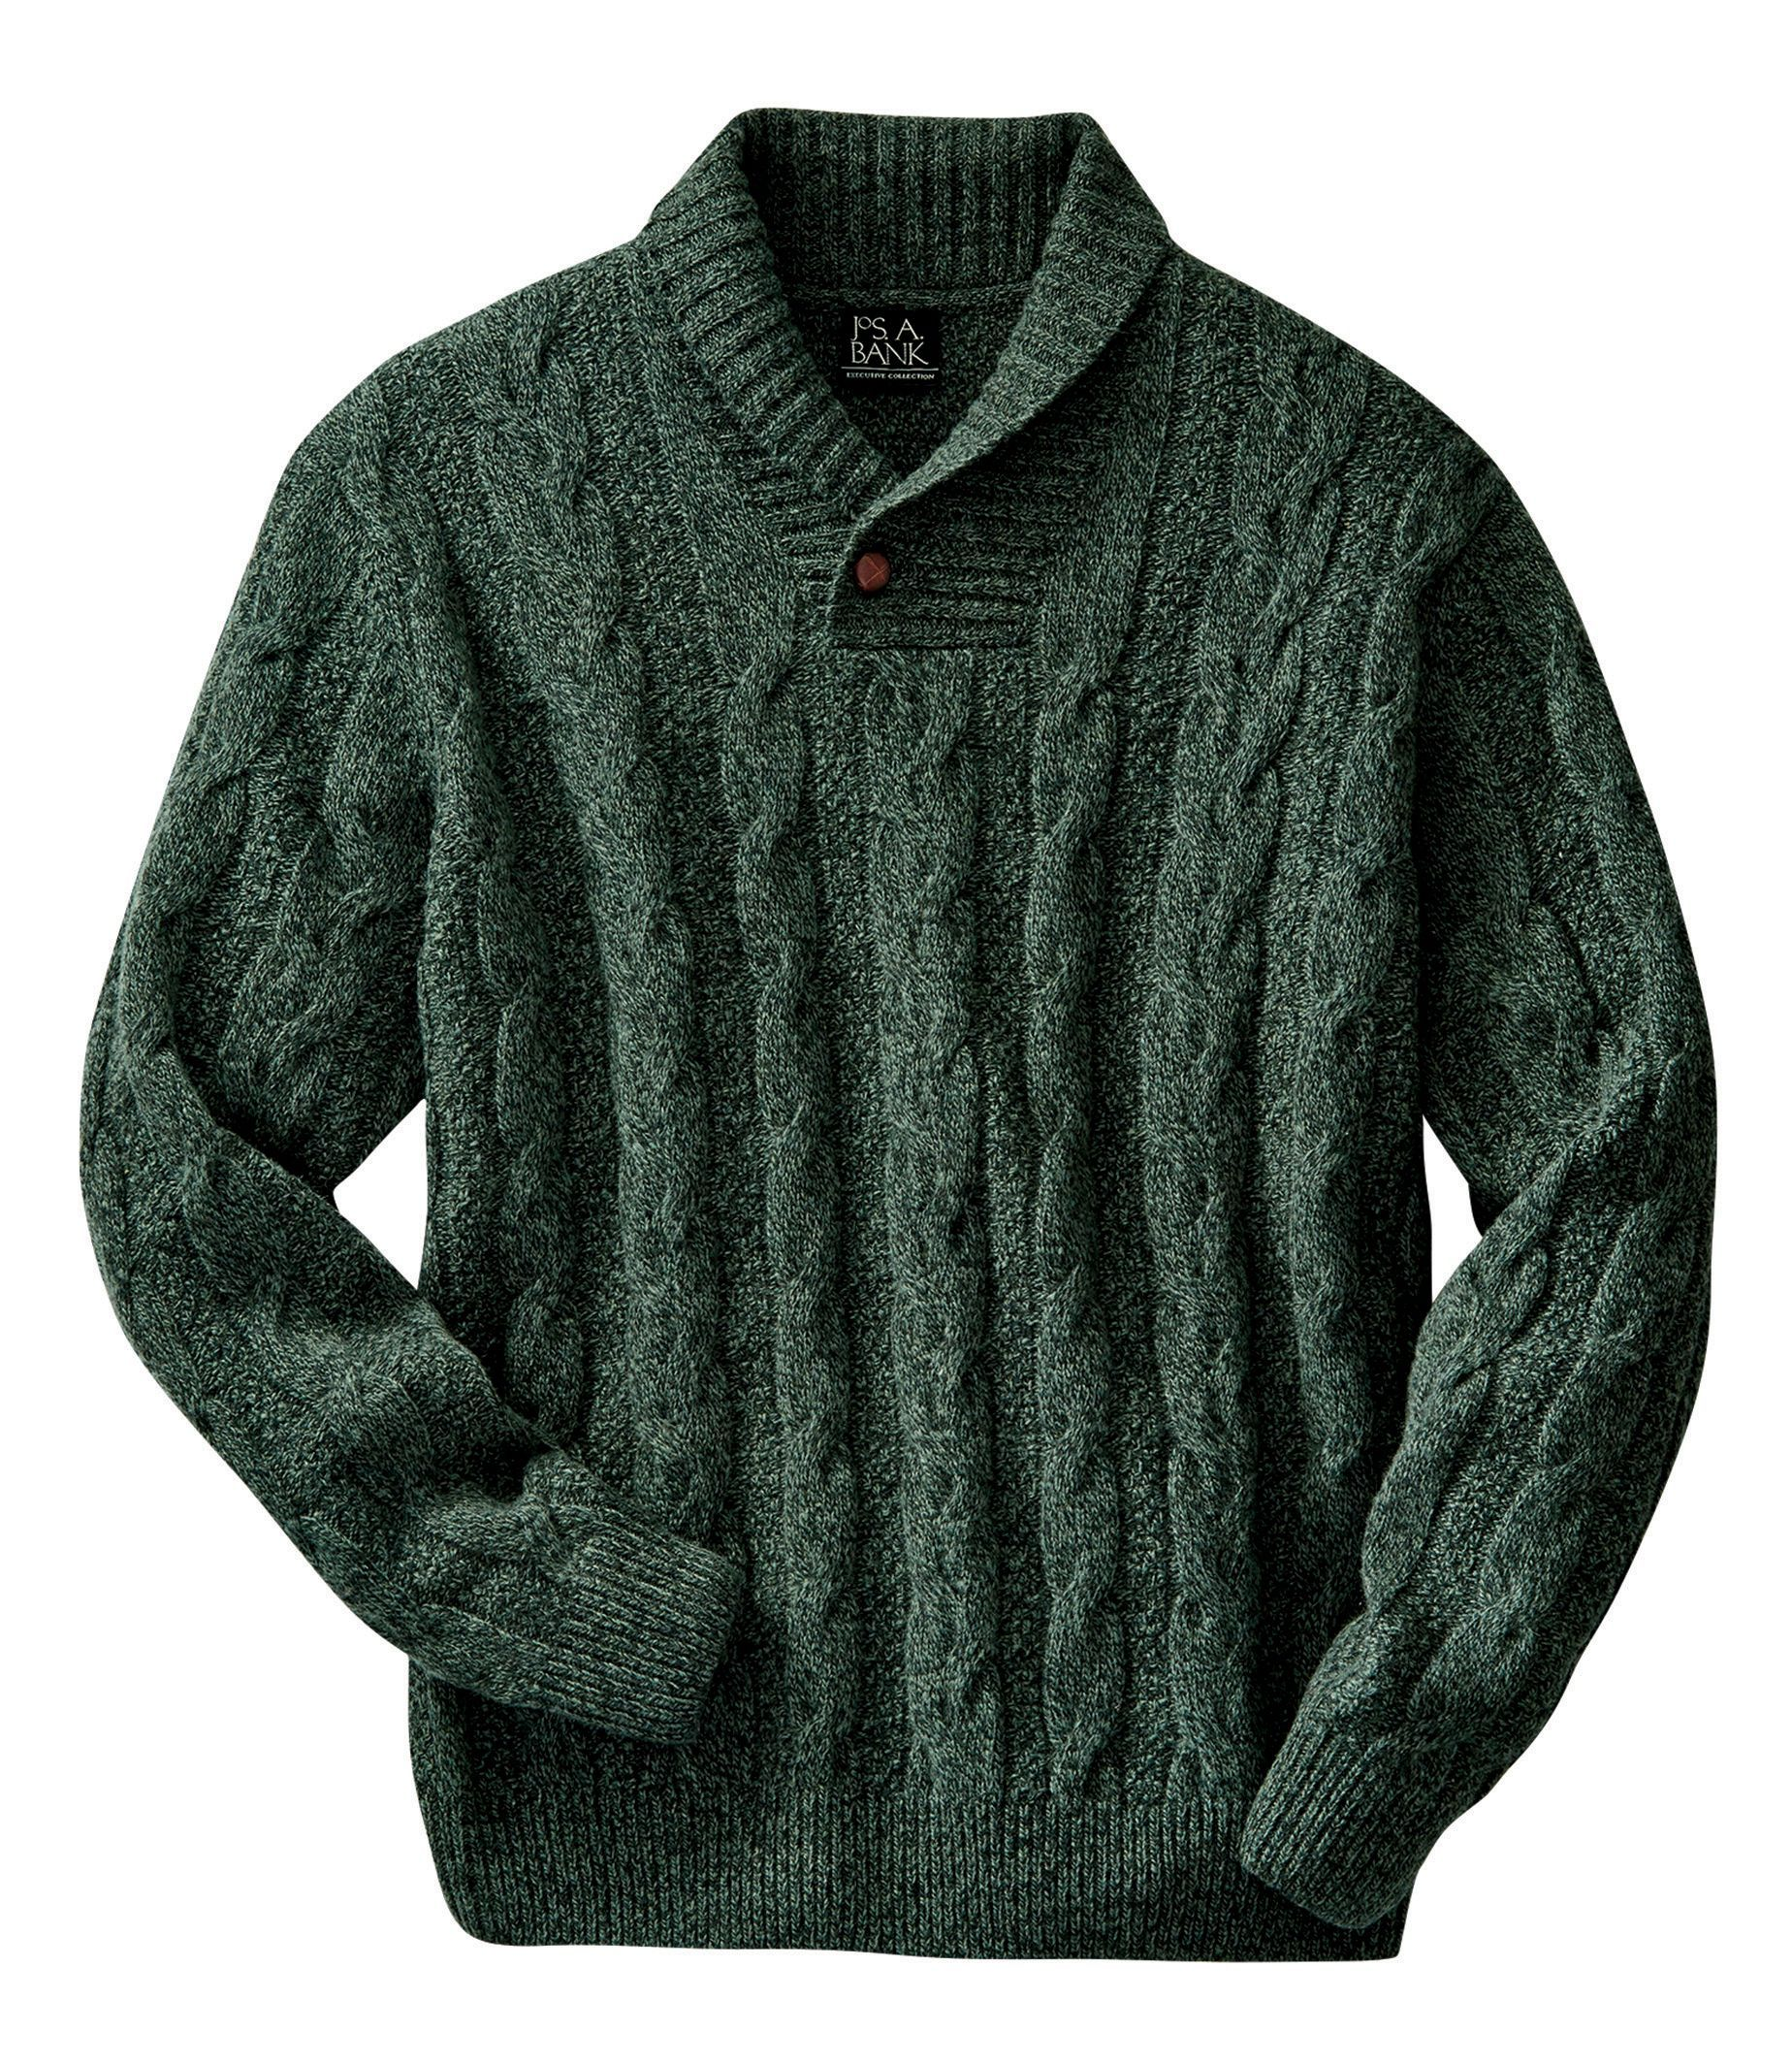 Check This Out Executive Collection Lambswool Shawl Collar Cable Knit Sweater From Jos A Bank Clothiers Sweaters Cable Knit Sweaters Shawl Collar Sweater